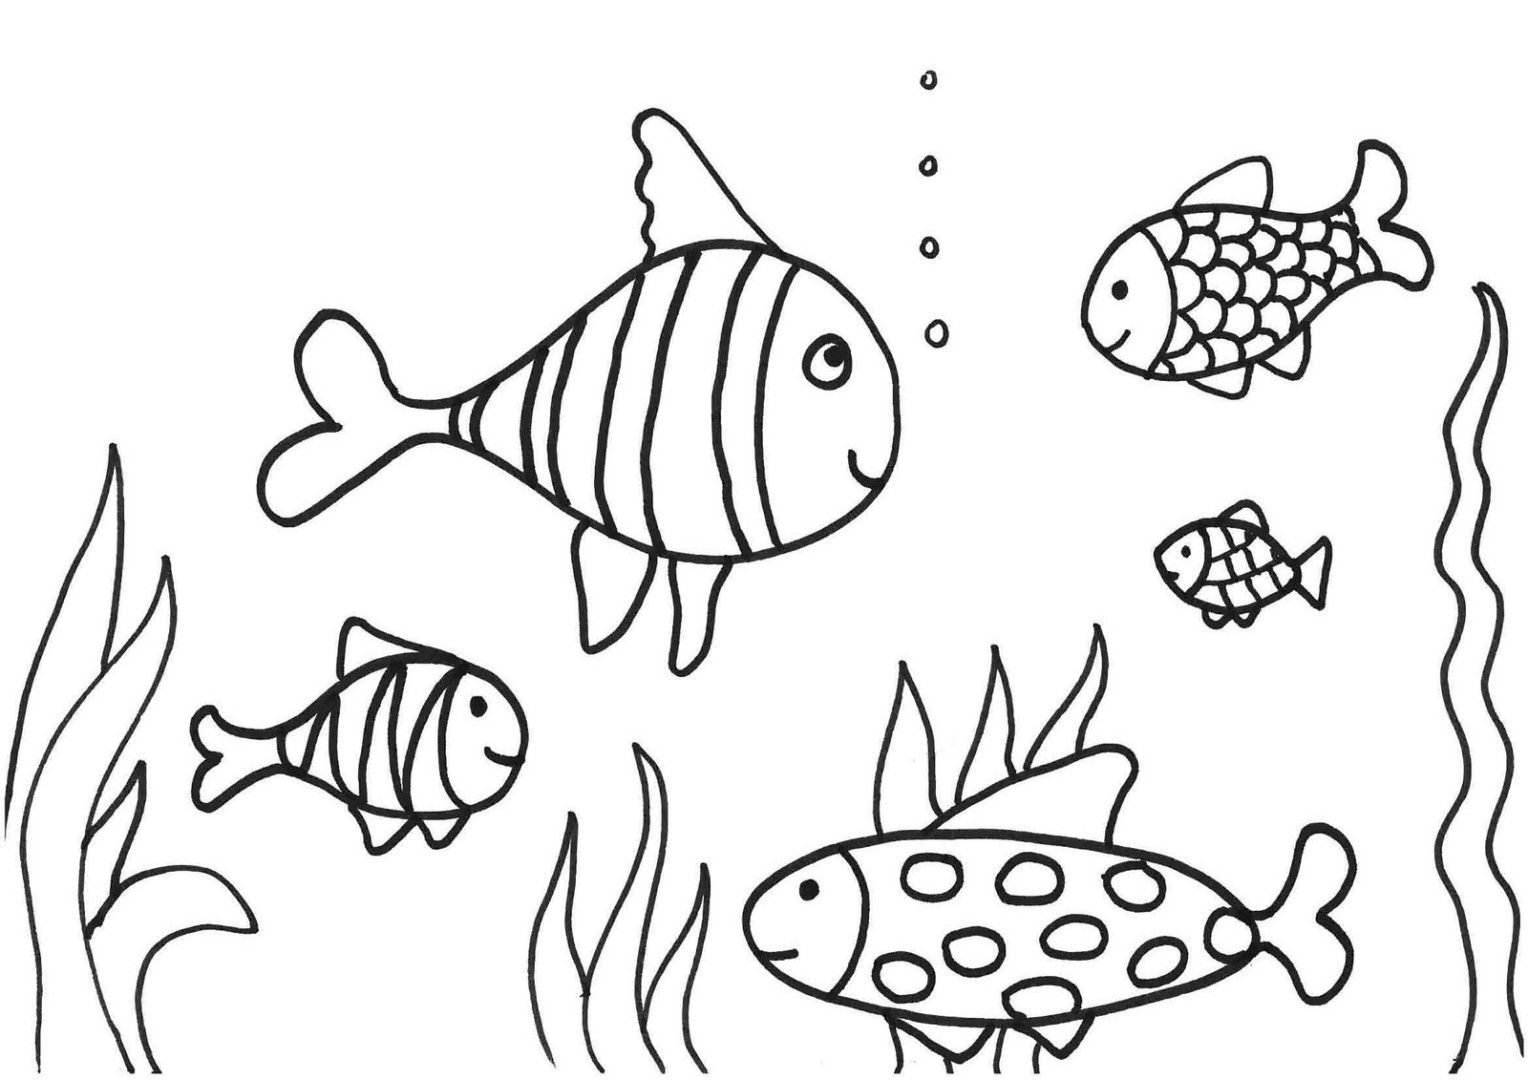 Pin by julia on Colorings | Pinterest | Fish, Craft activities and ...